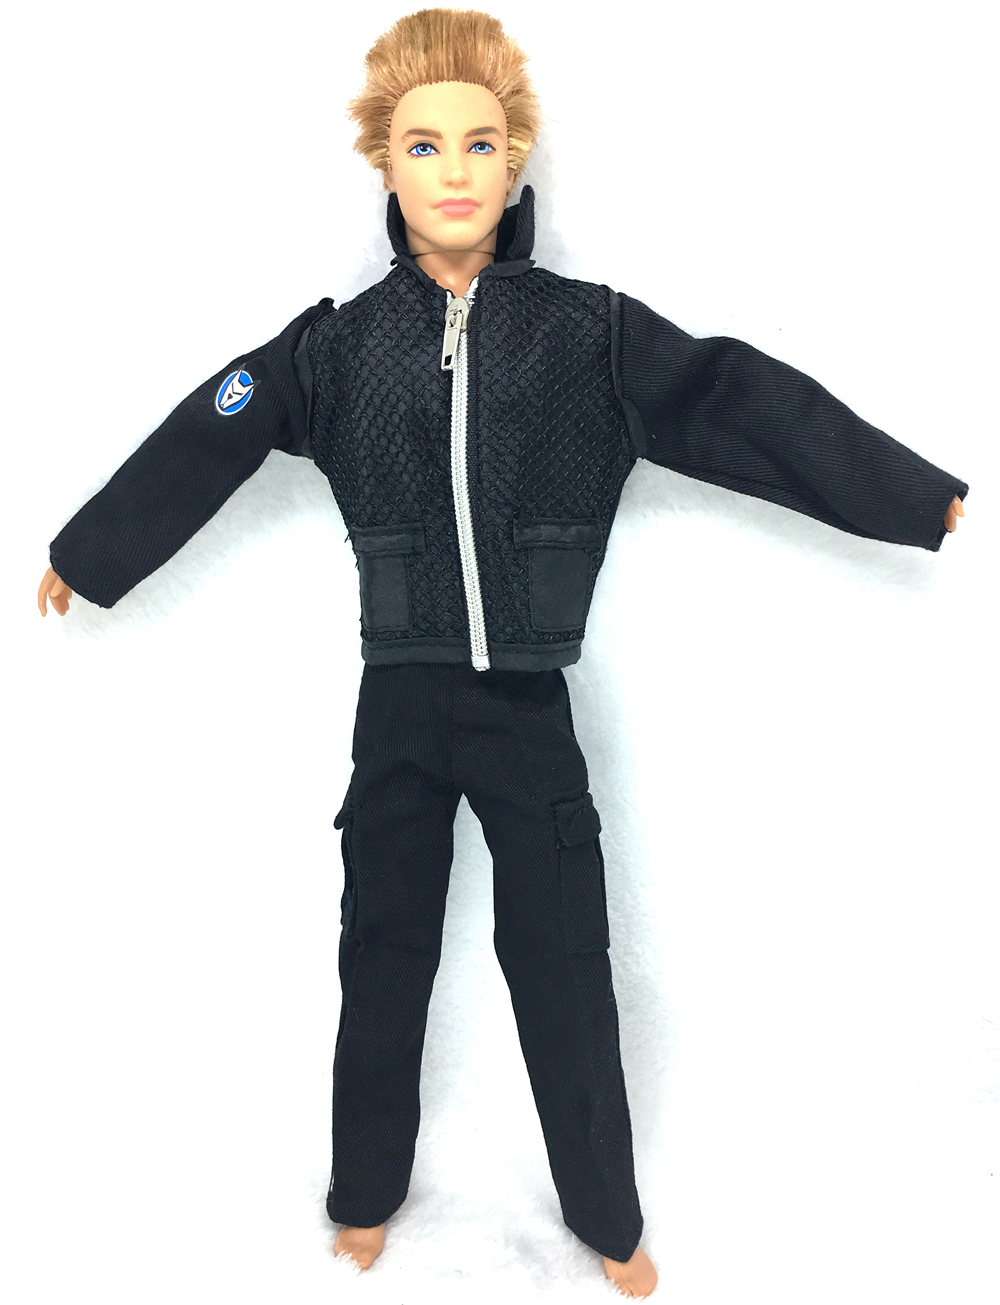 NK Authentic Prince Garments Fight Police Uniform Cop Outfit For Barbie Boy Male Ken Doll For Lanard  1/6 Soldier  Finest Reward 040